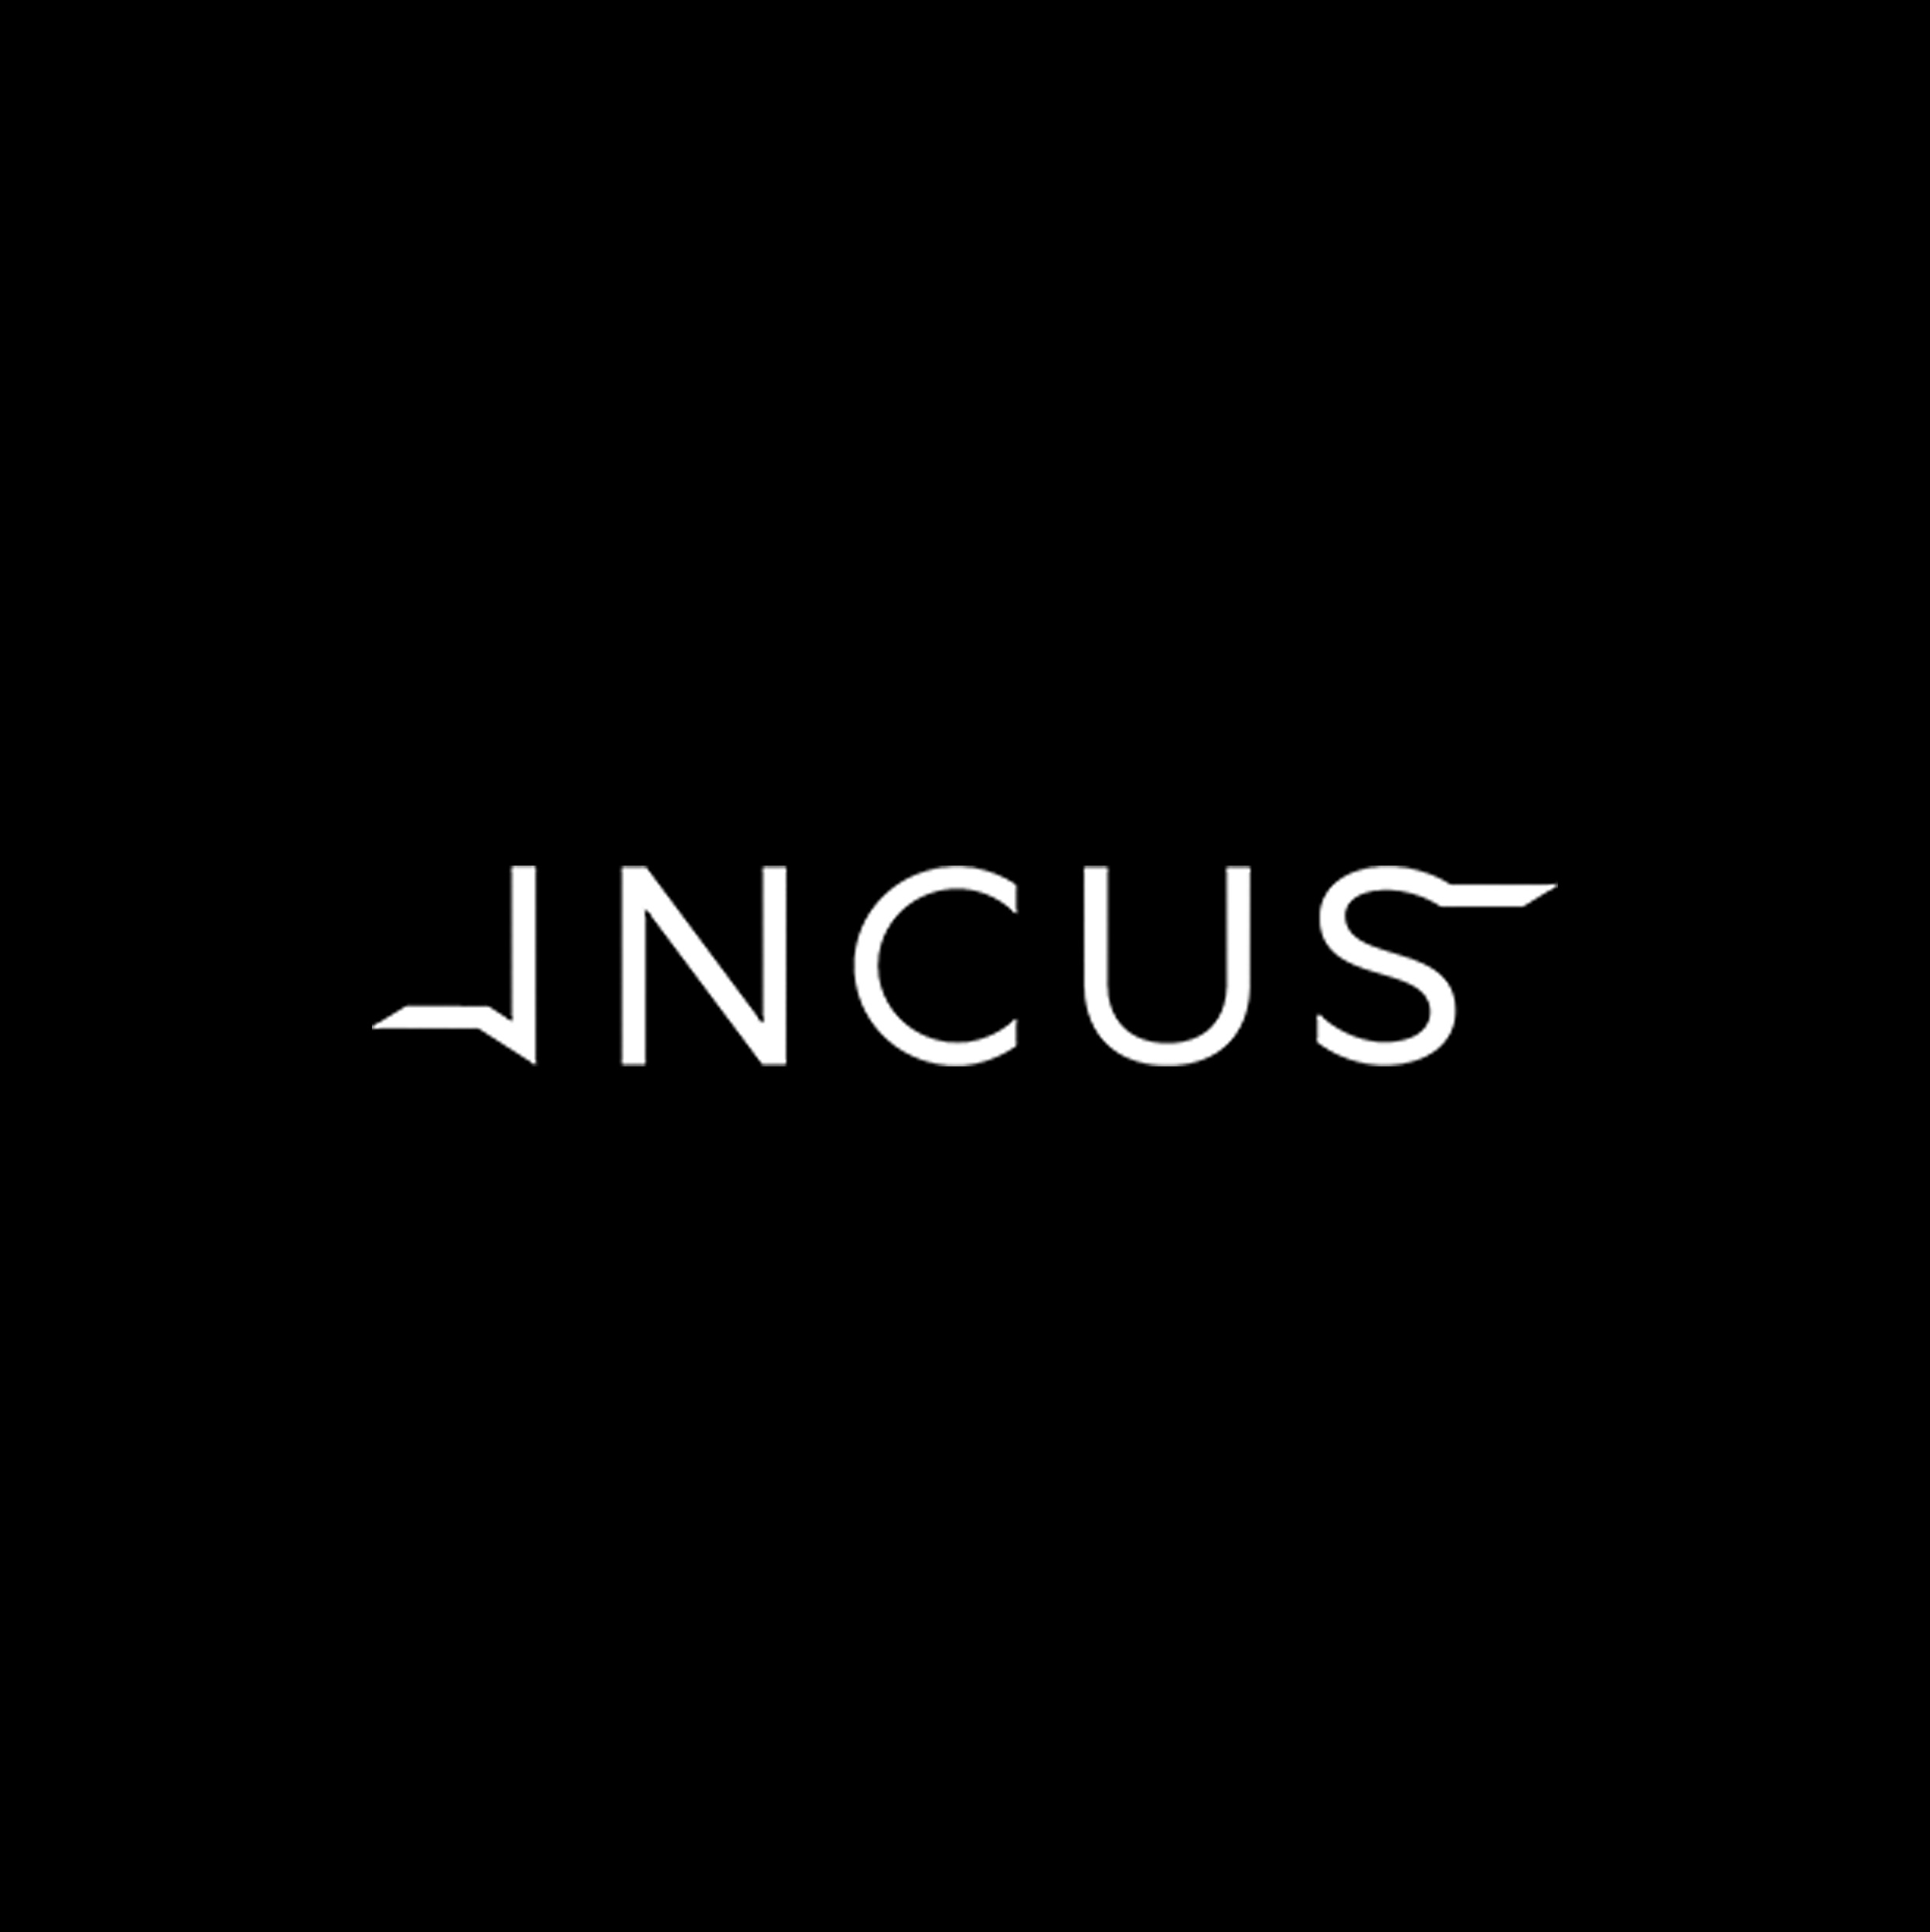 incus performance - Incus Performance is a technology company that combines artificial intelligence, wearable technologies and data analytics to help swimmers and triathletes to train better